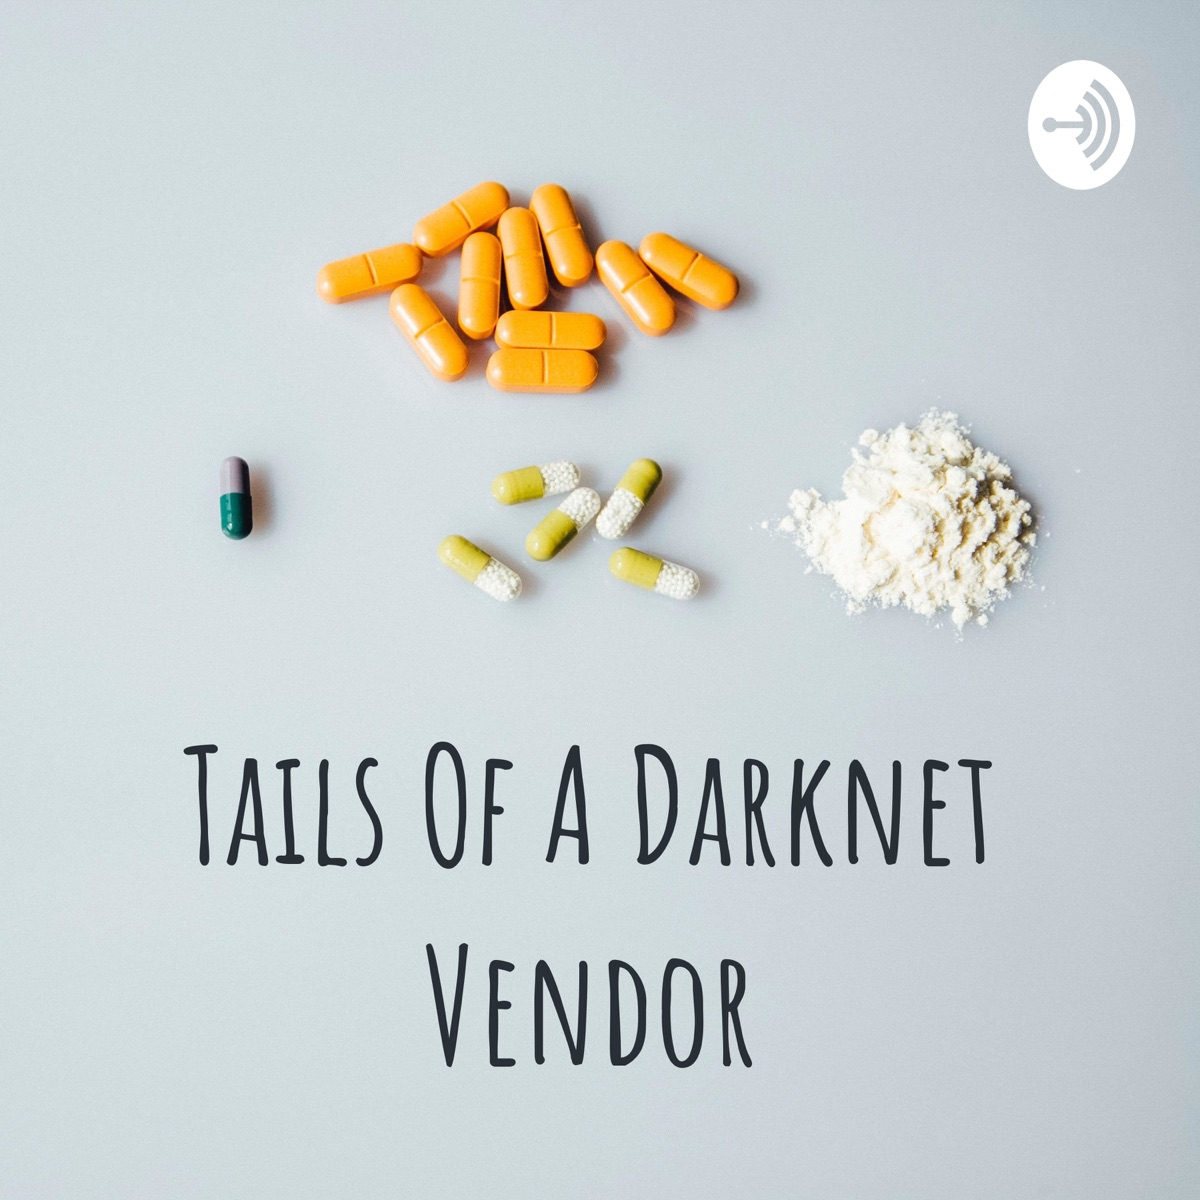 Tails Of A Darknet Vendor